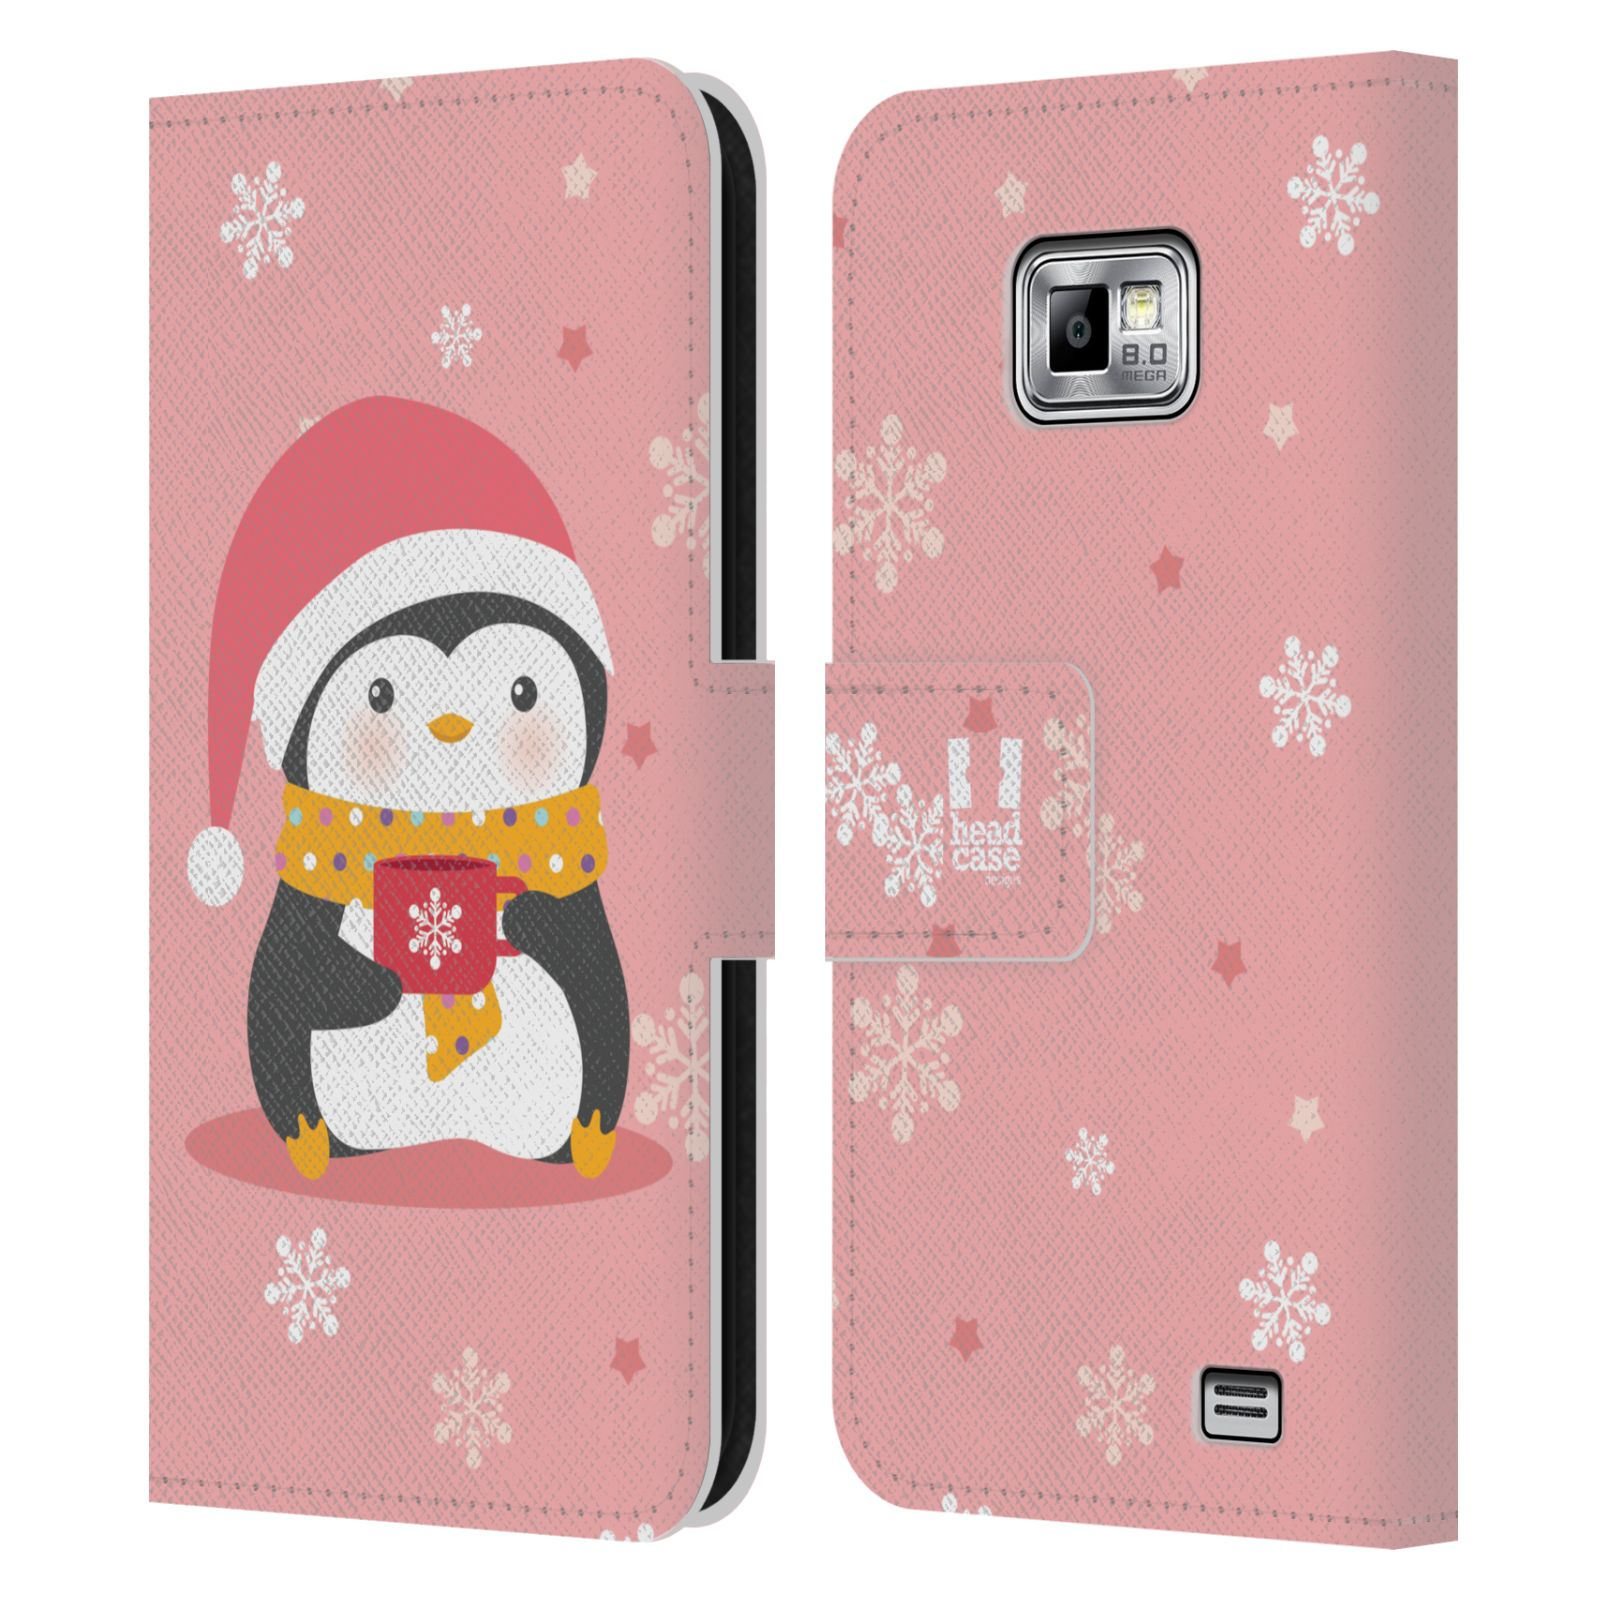 Penguin Book Phone Cover : Head case kawaii christmas penguins leather book for